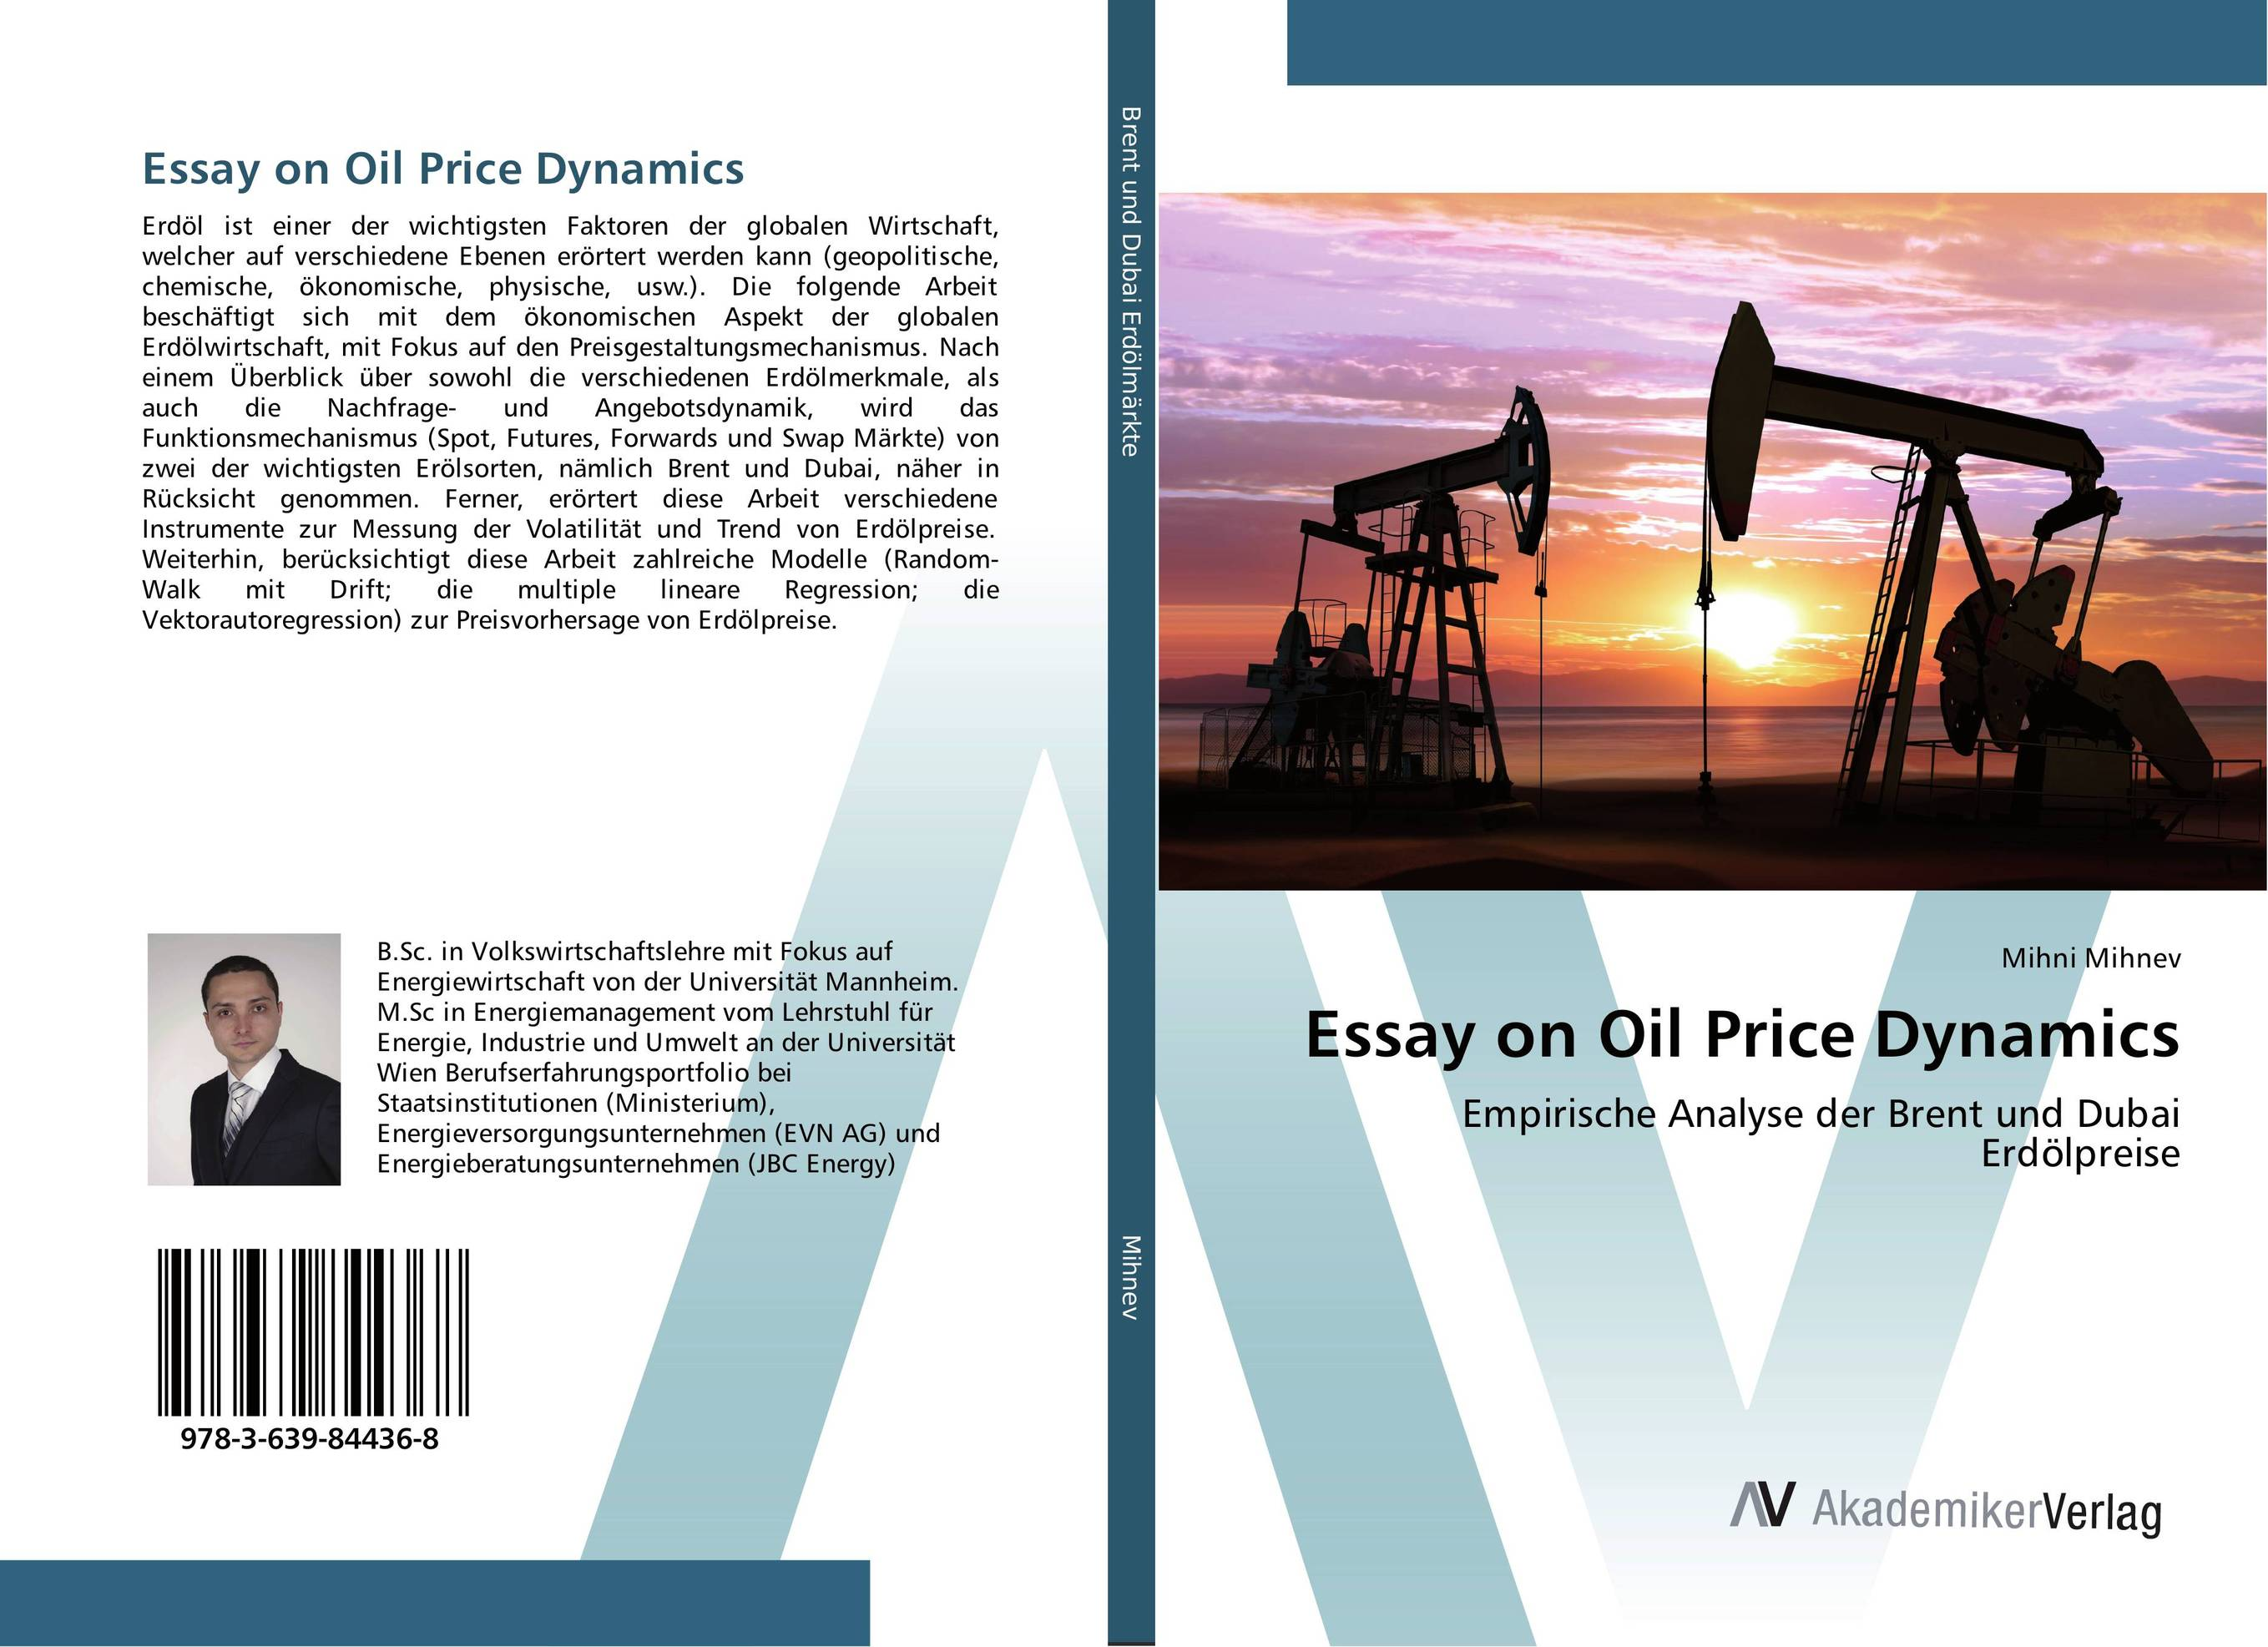 Essay on Oil Price Dynamics